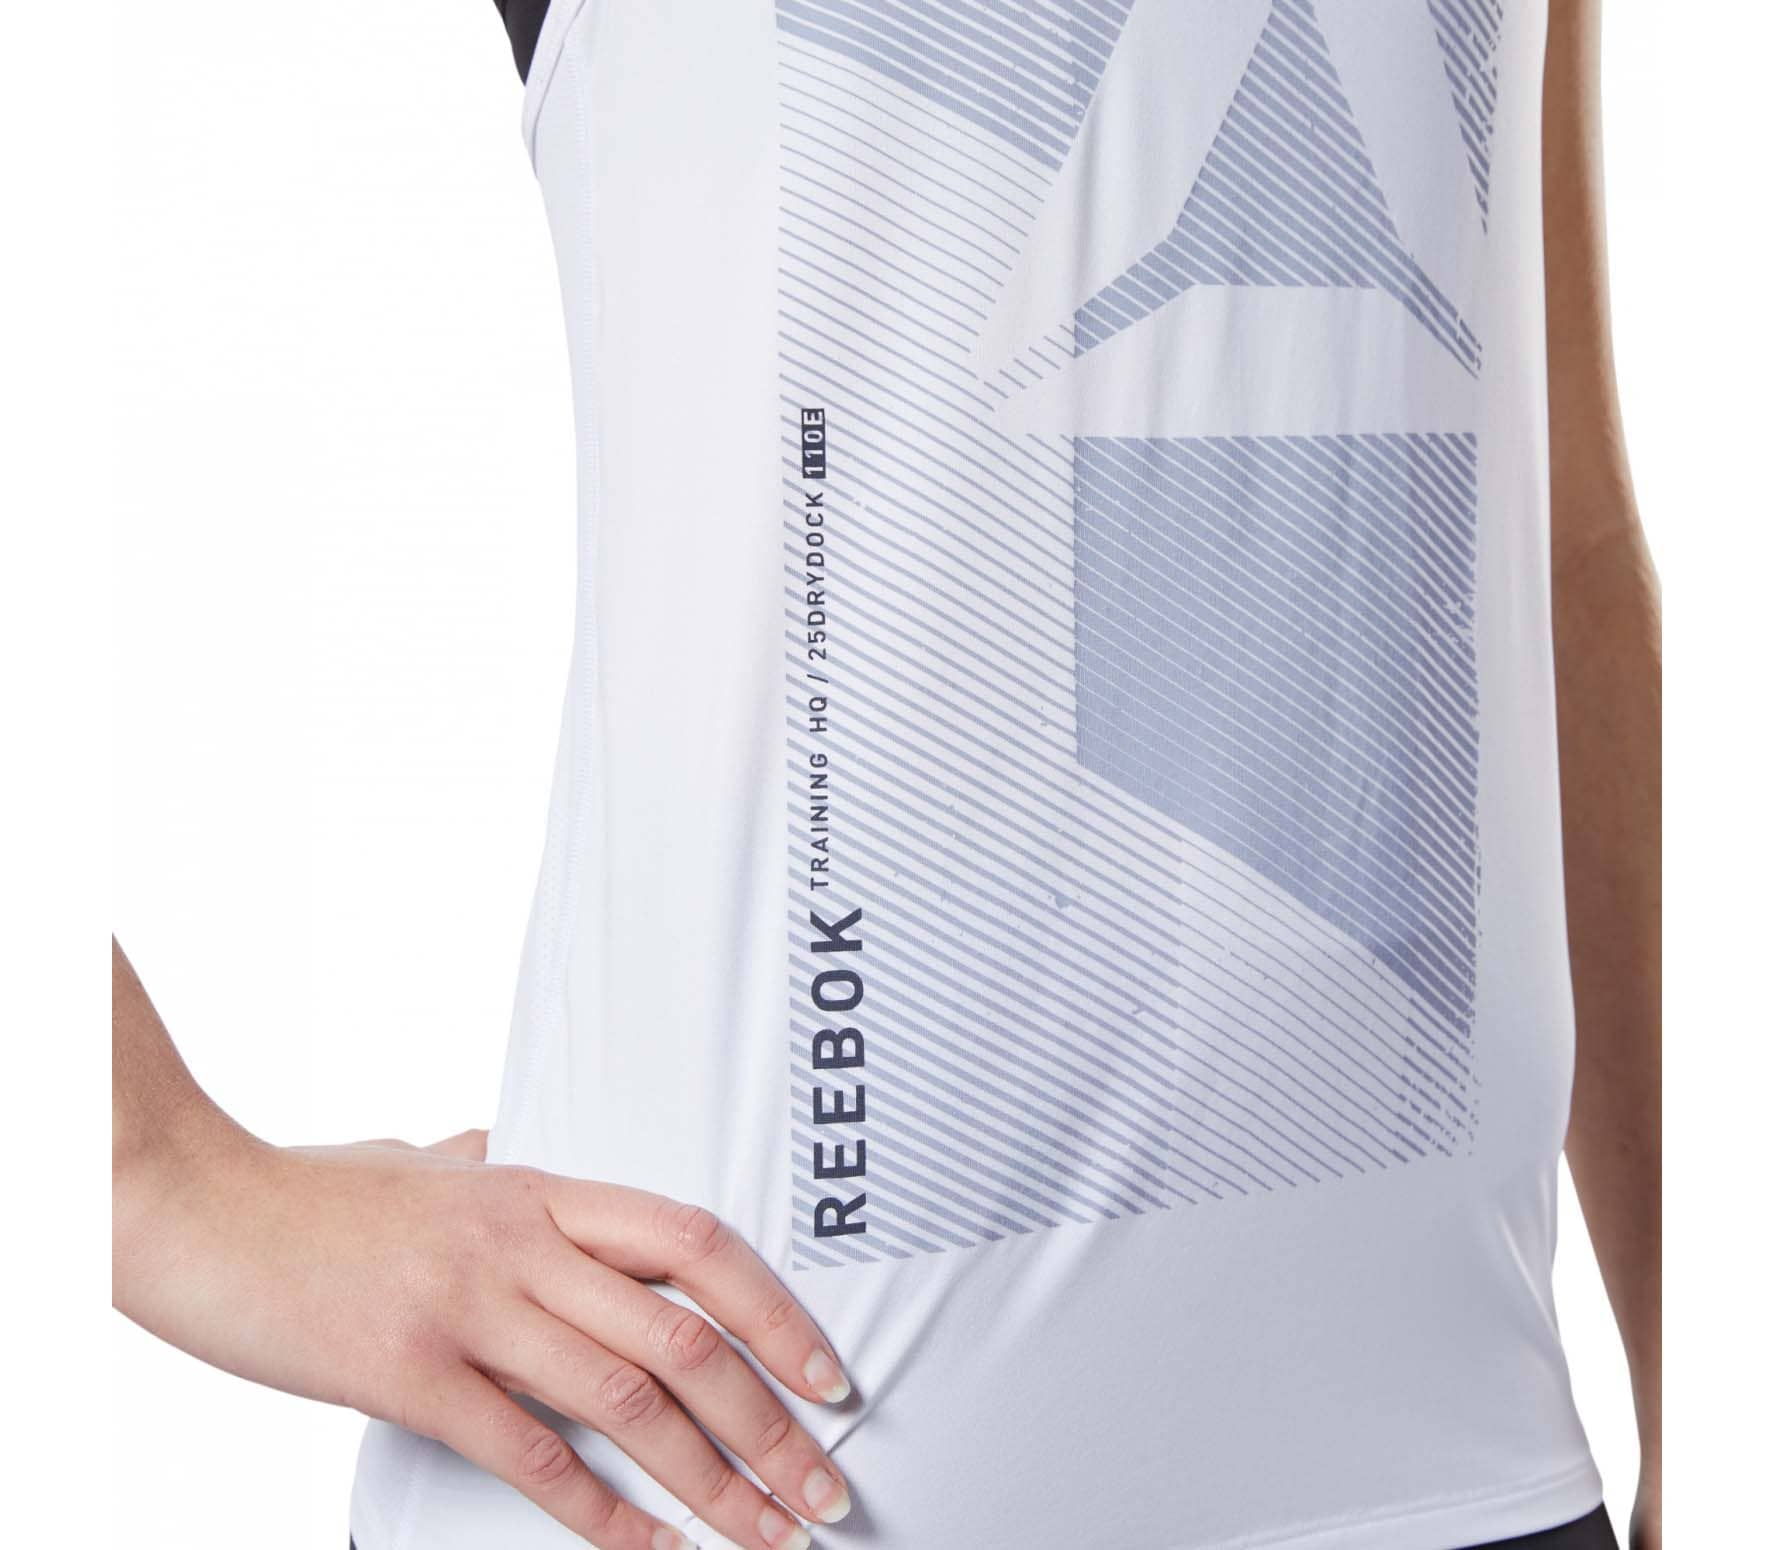 Reebok Ost AC Graphic Women Training Top white